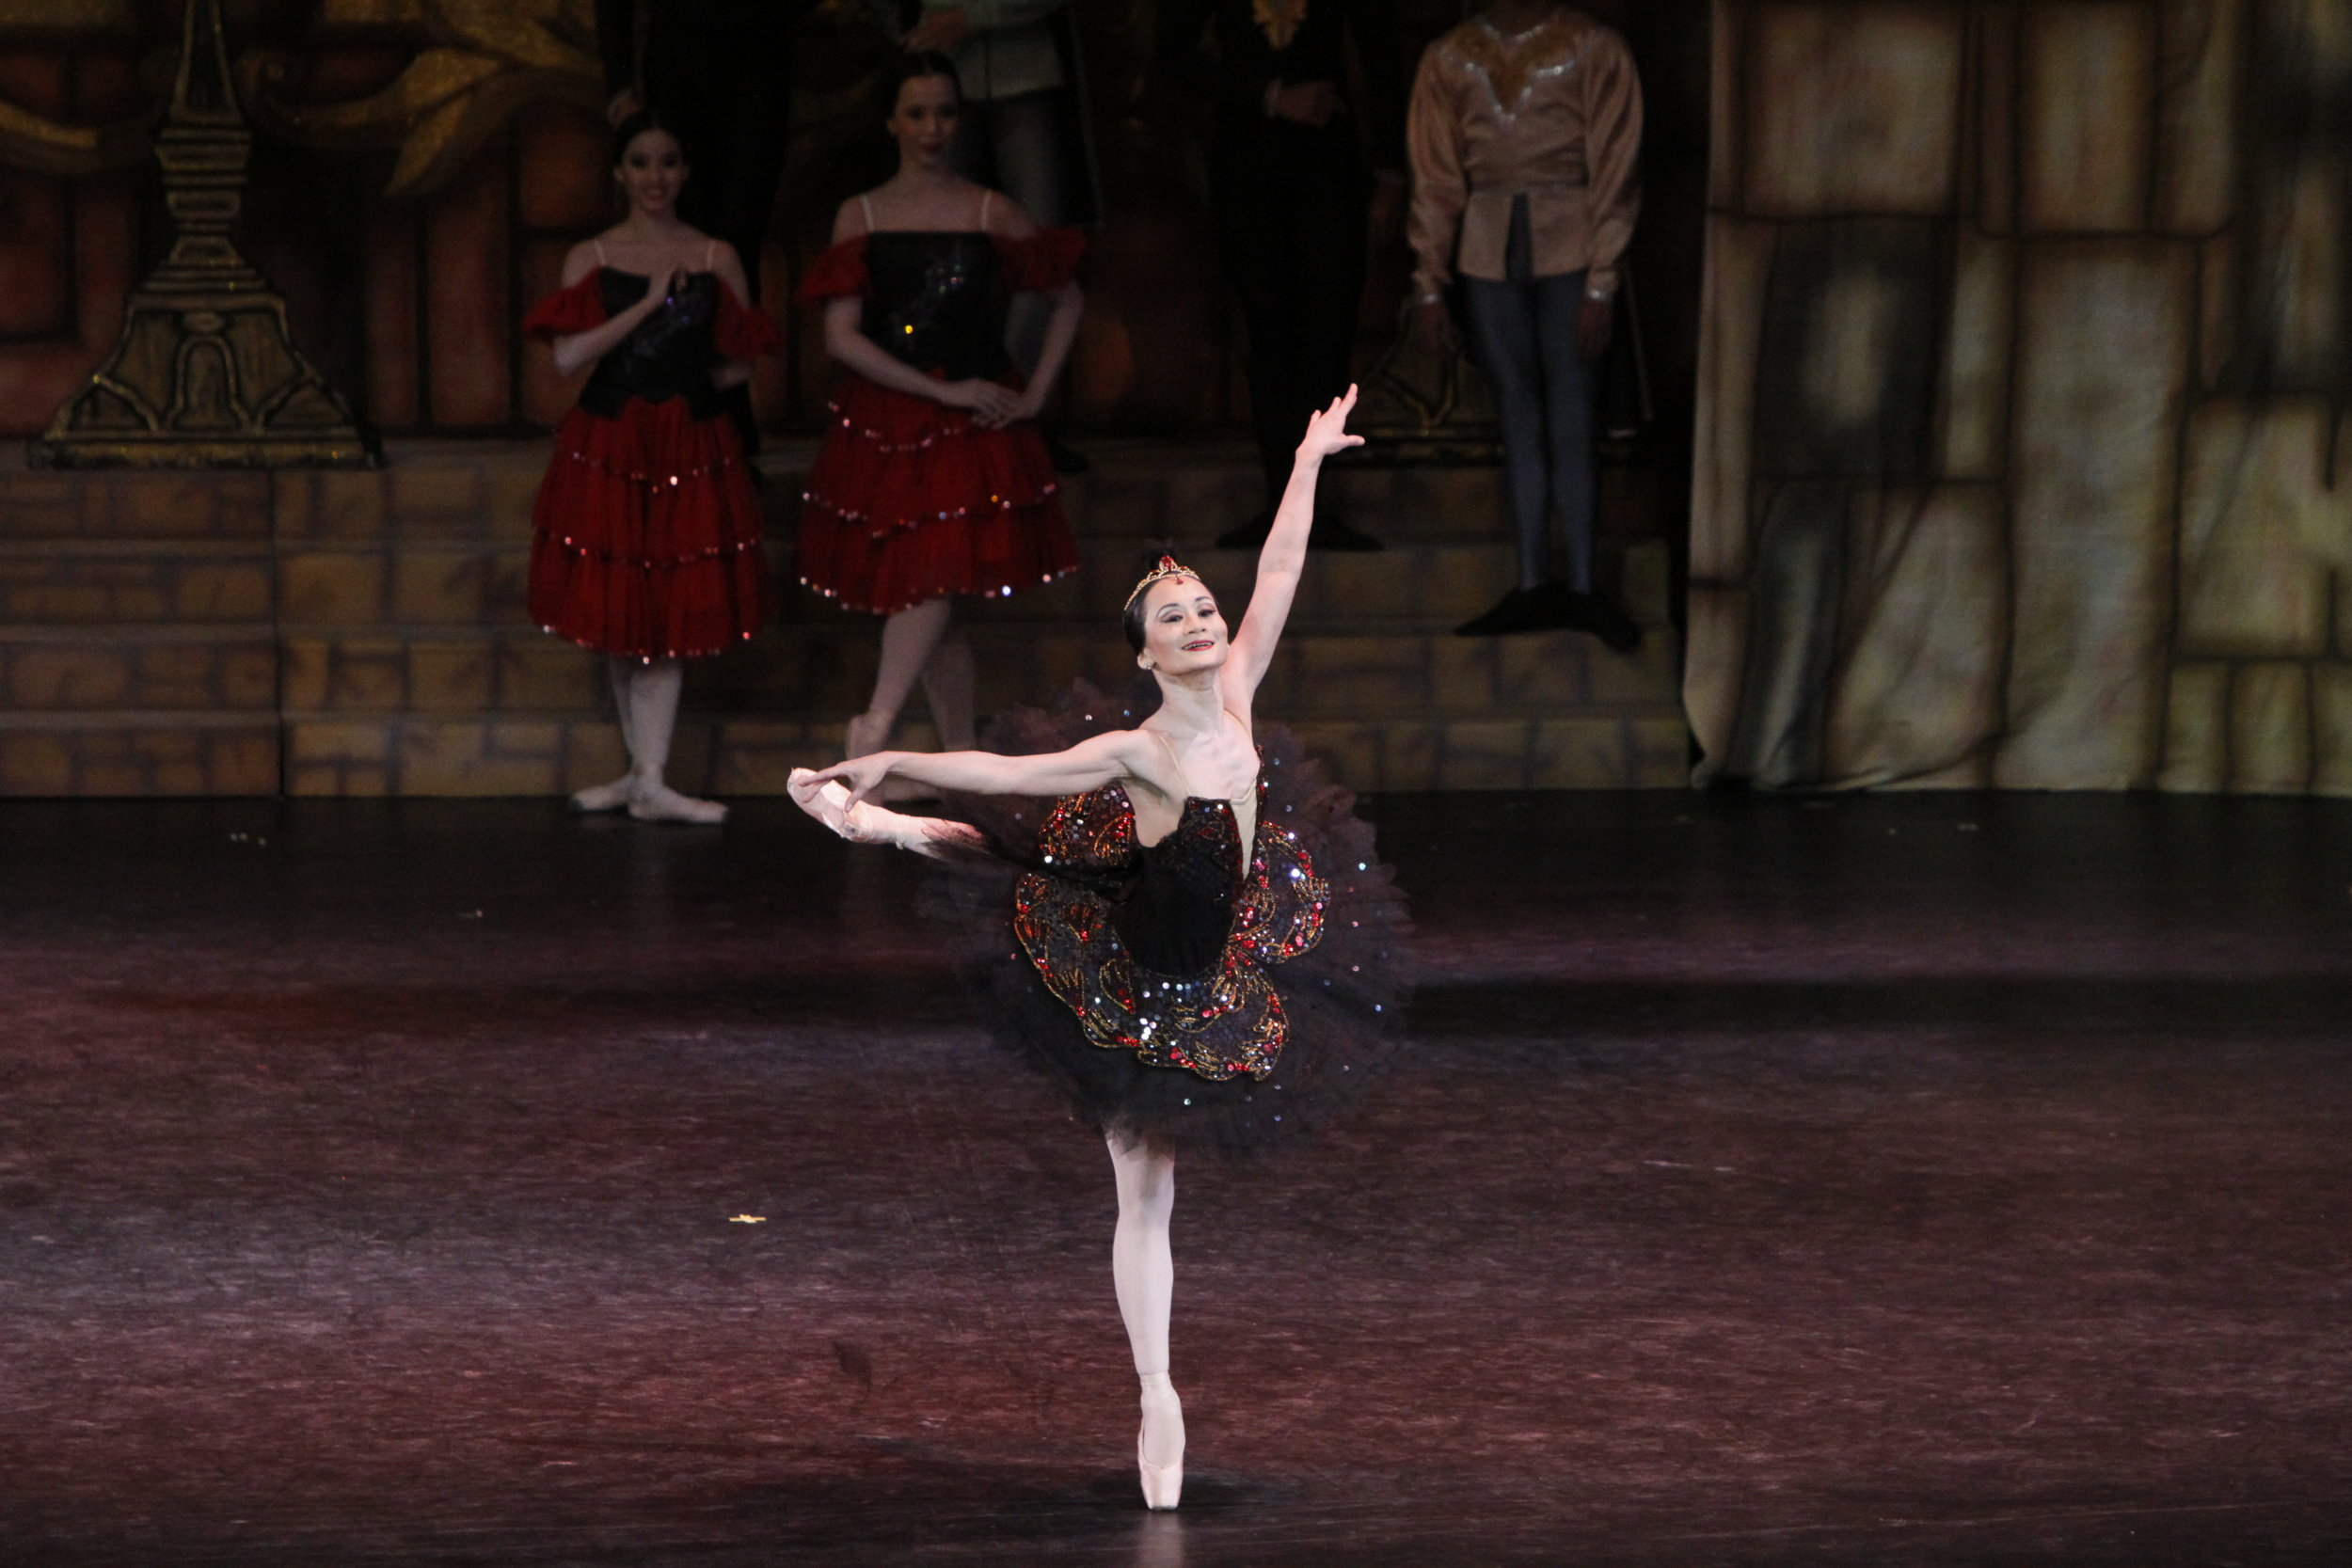 Lisa Macuja dances in    Swan Lake    in 2011 as part of her    Swan Song Series    wherein she performed her last Odette/ Odile. Photo by Ocs Alvarez